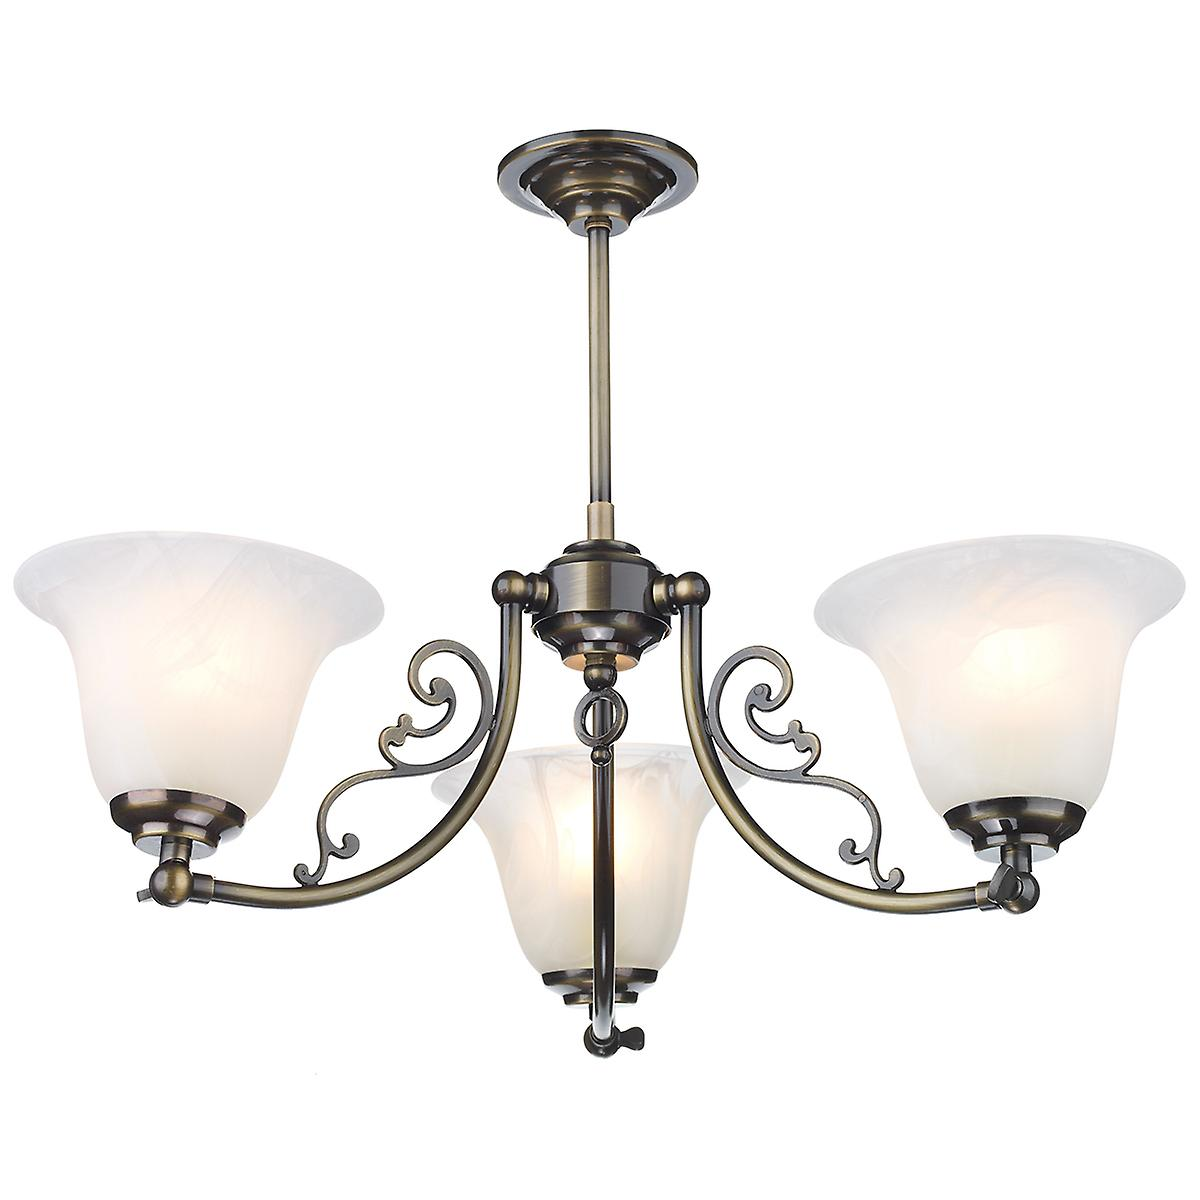 David Hunt CP30AB Campden 3 Light Pendant In An Antique Brass Finish - Pendant Only